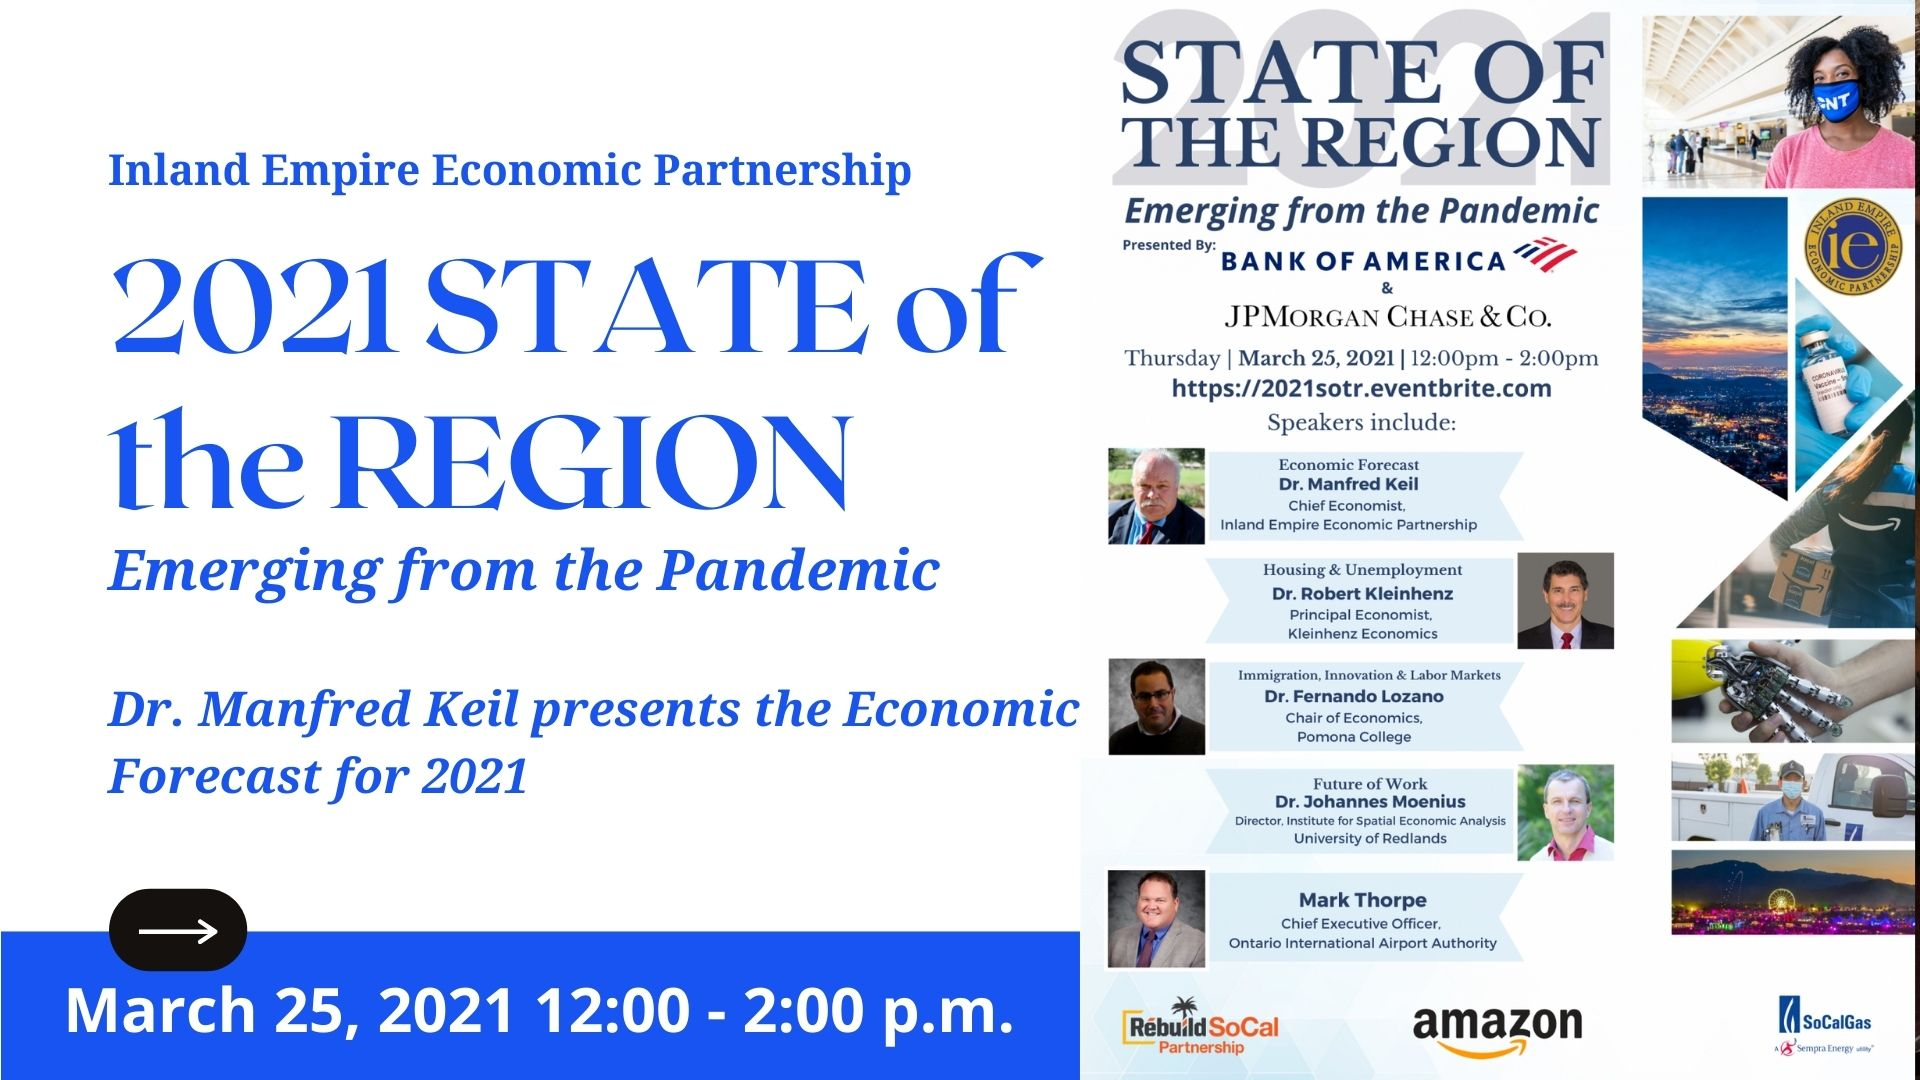 2021 STATE of the REGION